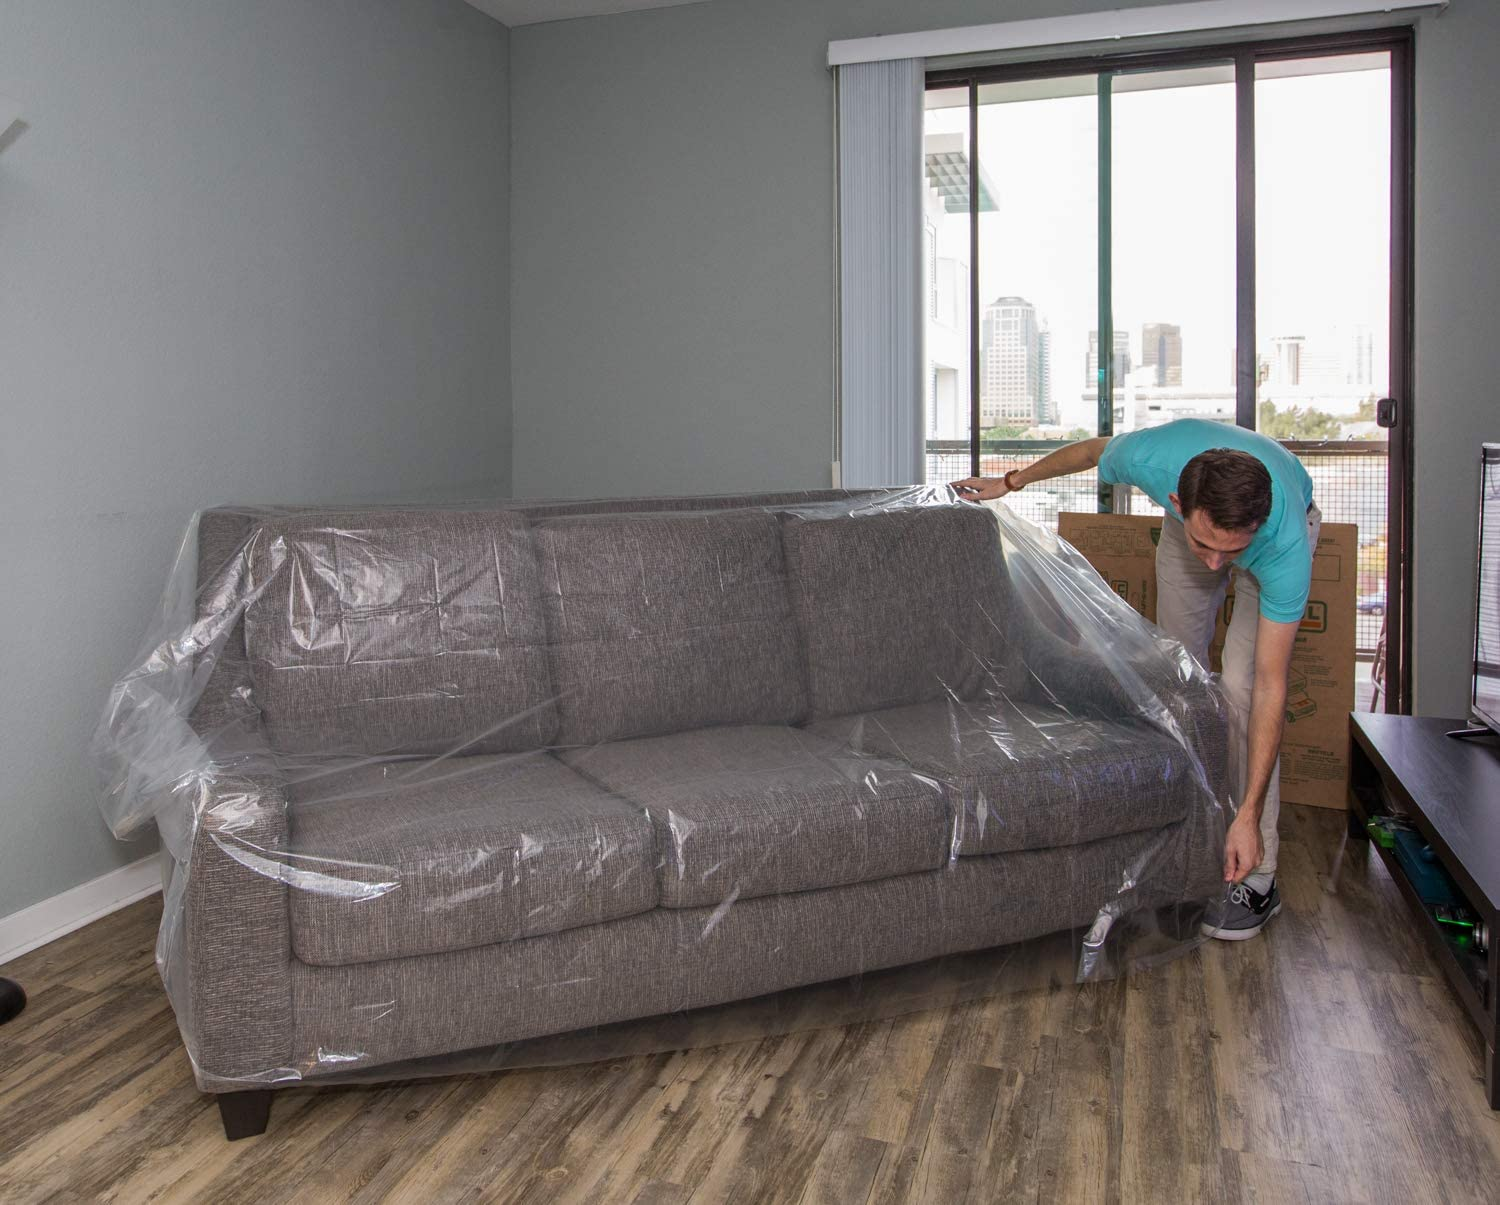 HZC03 160x160CM Dustproof Furniture Sofa//Couch Cover for Moving Protection and Long Term Storage